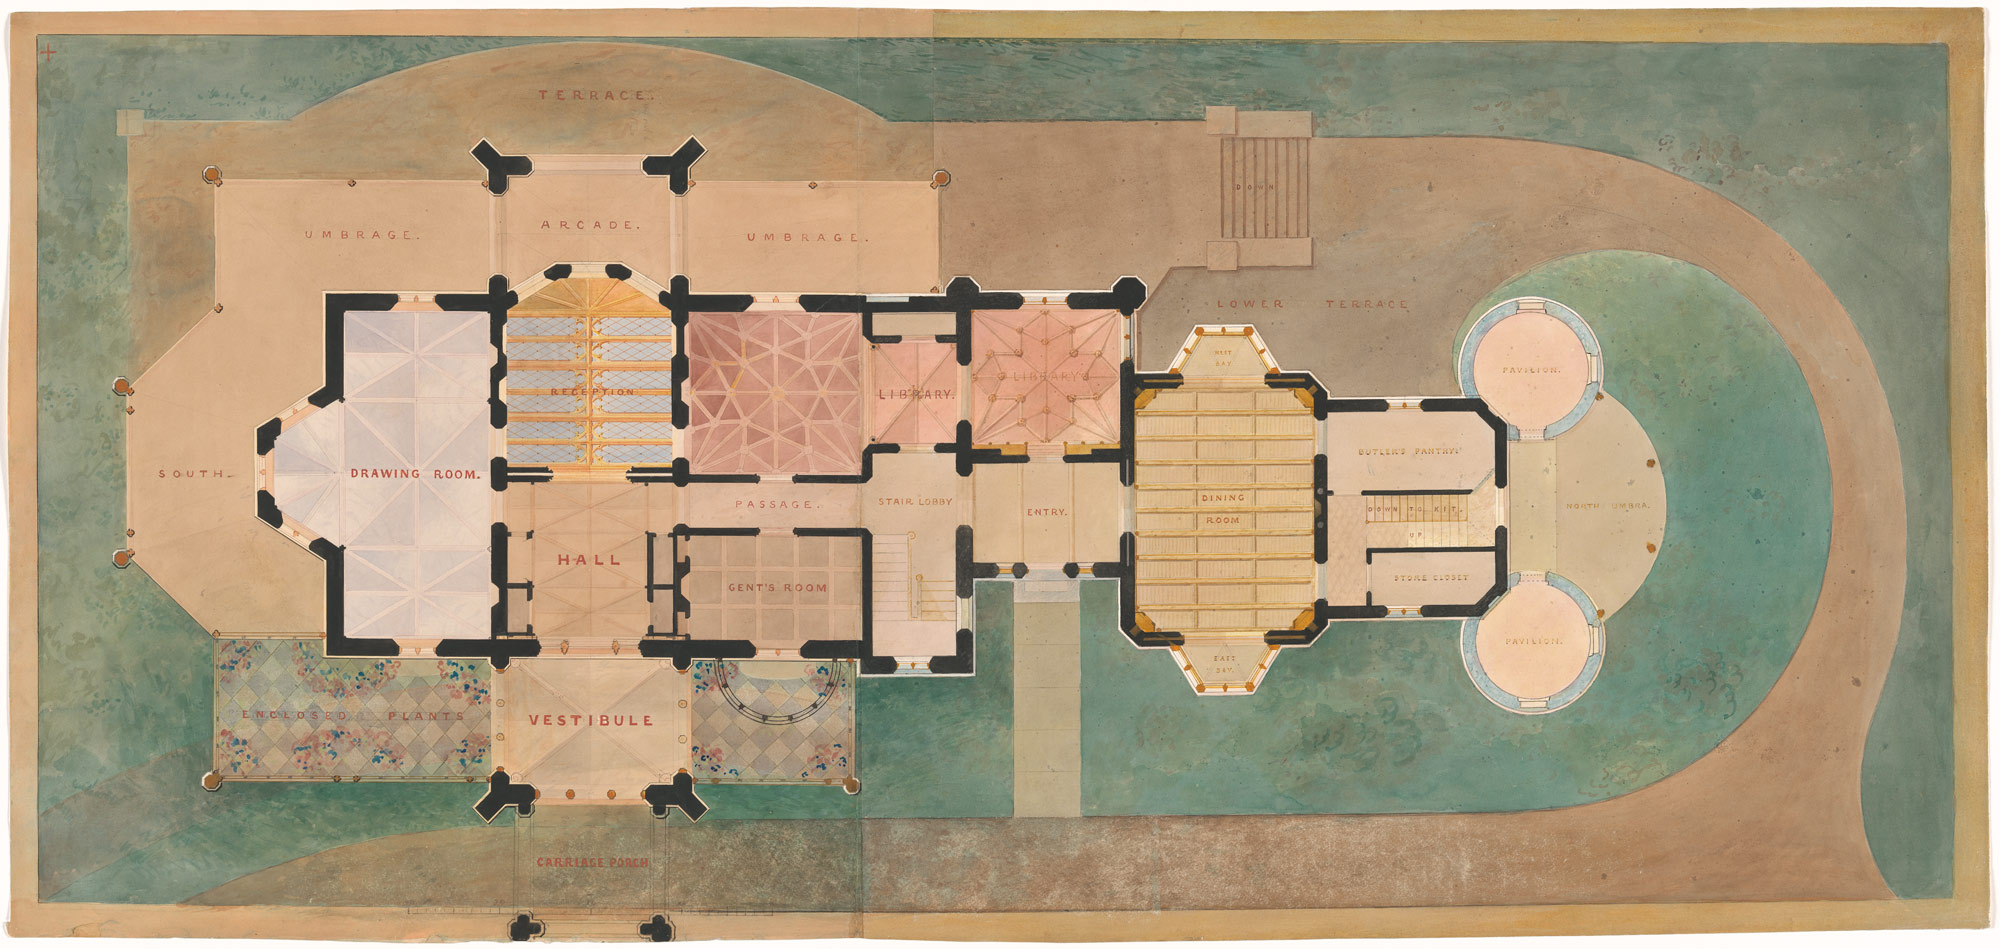 Lyndhurst for George Merritt, Tarrytown, New York (first floor plan)